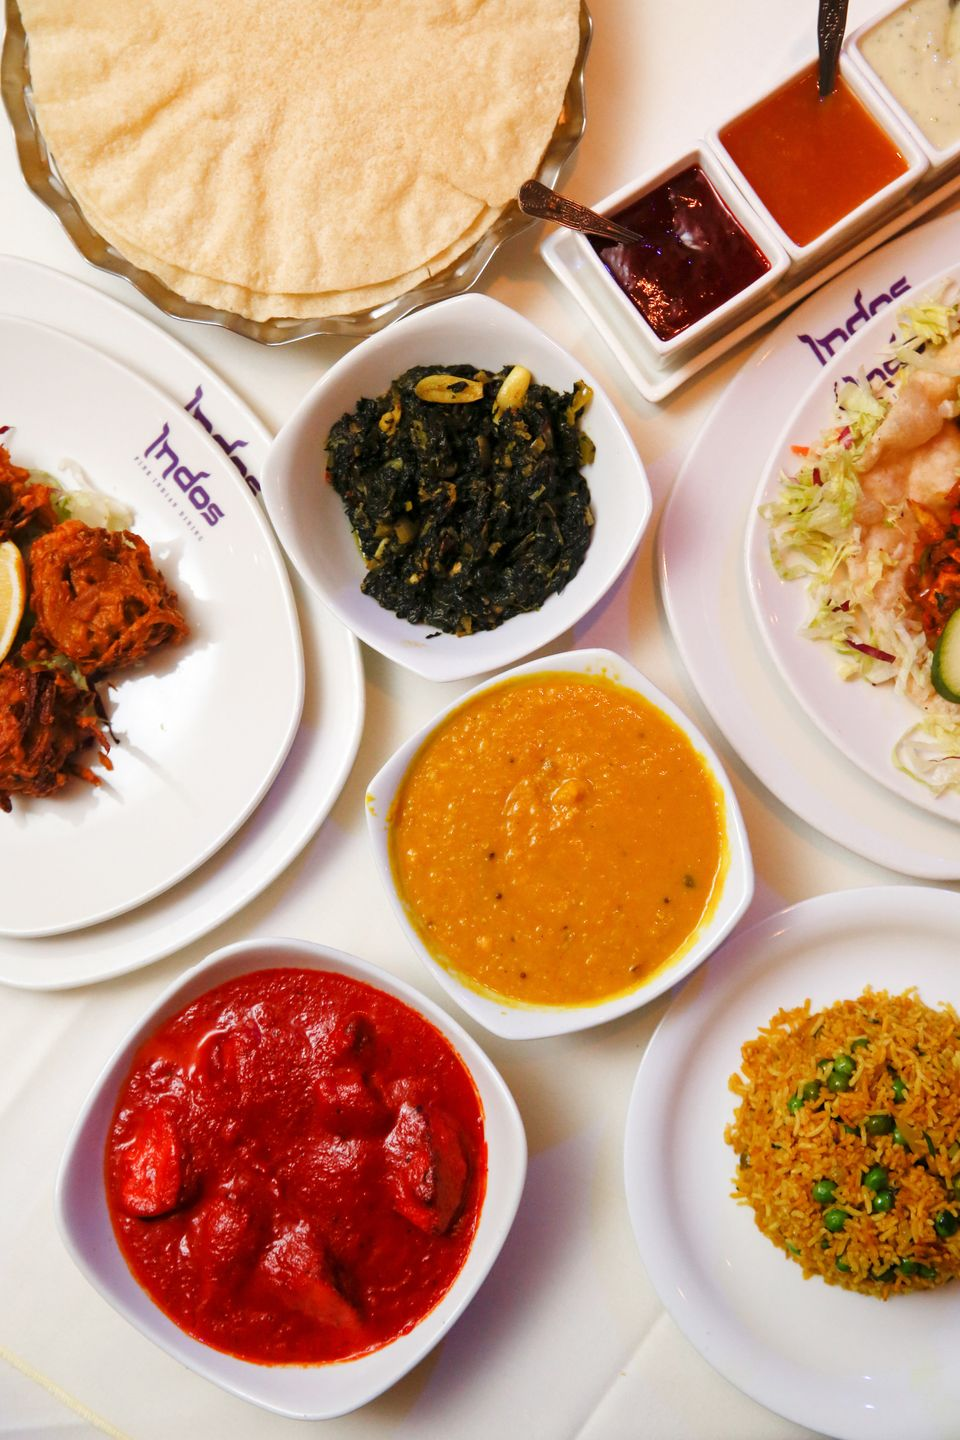 A selection of Indian food sits on a table in the Indo Indian fine dining restaurant in Chobham, U.K., on Wednesday, Nov. 14, 2018. Almost two decades after chicken tikka masala was unofficially declared Britain's national dish, pro-Leave politicians promised restaurants higher inflows from South Asia with easier visa rules, shutting the door on European workers, allowing lower salary-thresholds to hire overseas staff and even regularizing undocumented workers. Photographer: Luke MacGregor/Bloomberg via Getty Images